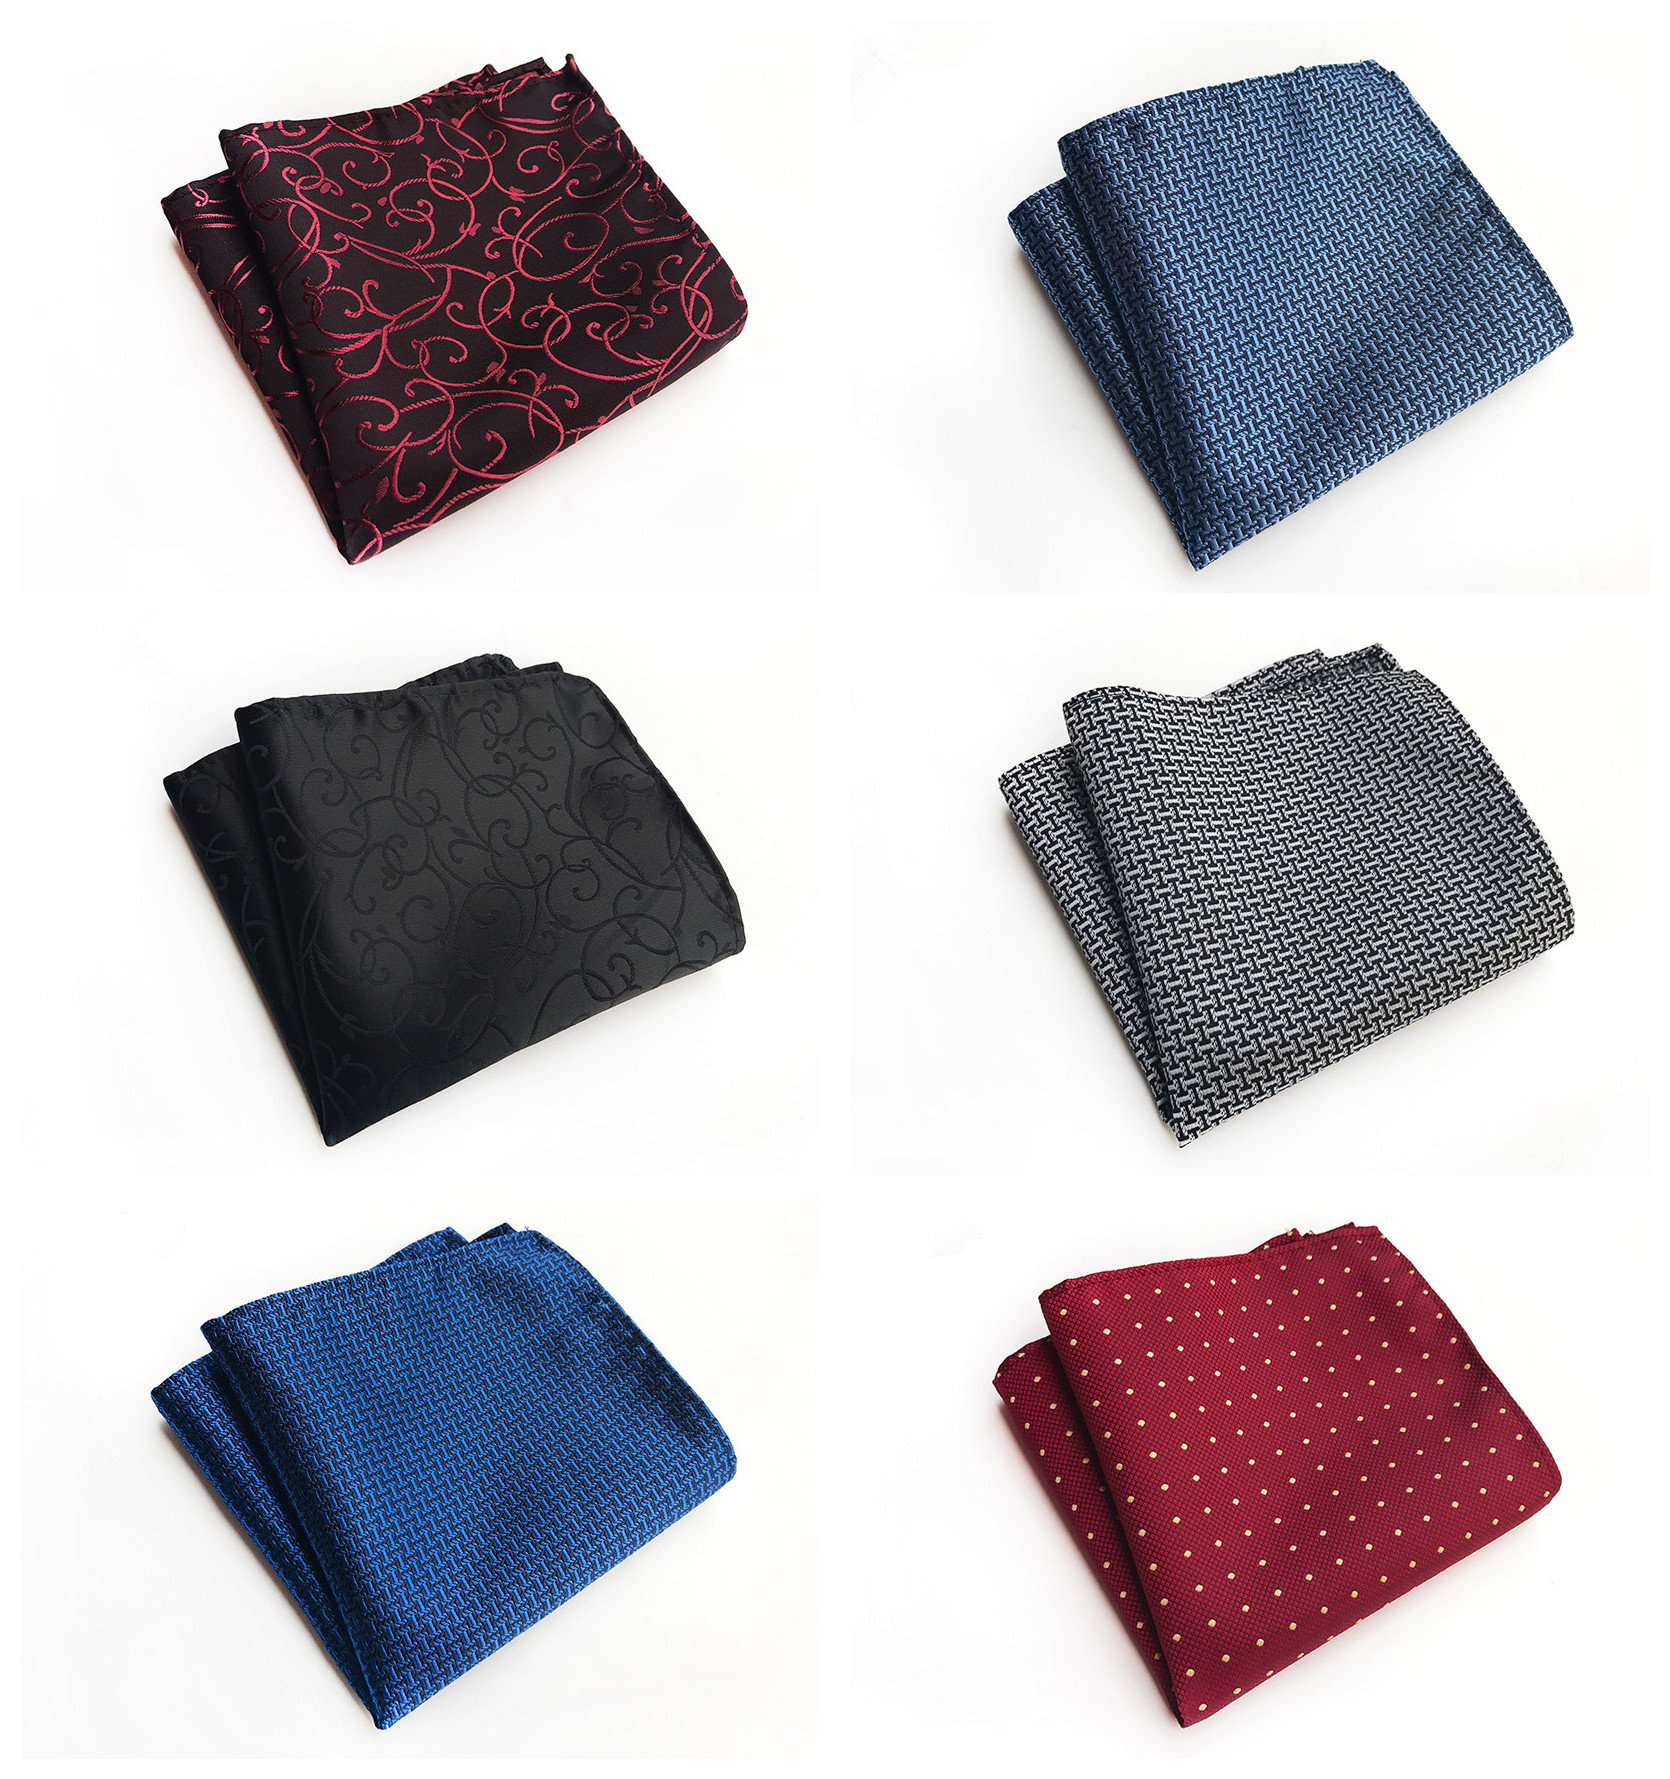 2019 Fashion Explosion Men's Business Suit Handkerchief Towel Fashion Unique Design Polyester Material Dress Pocket Towel